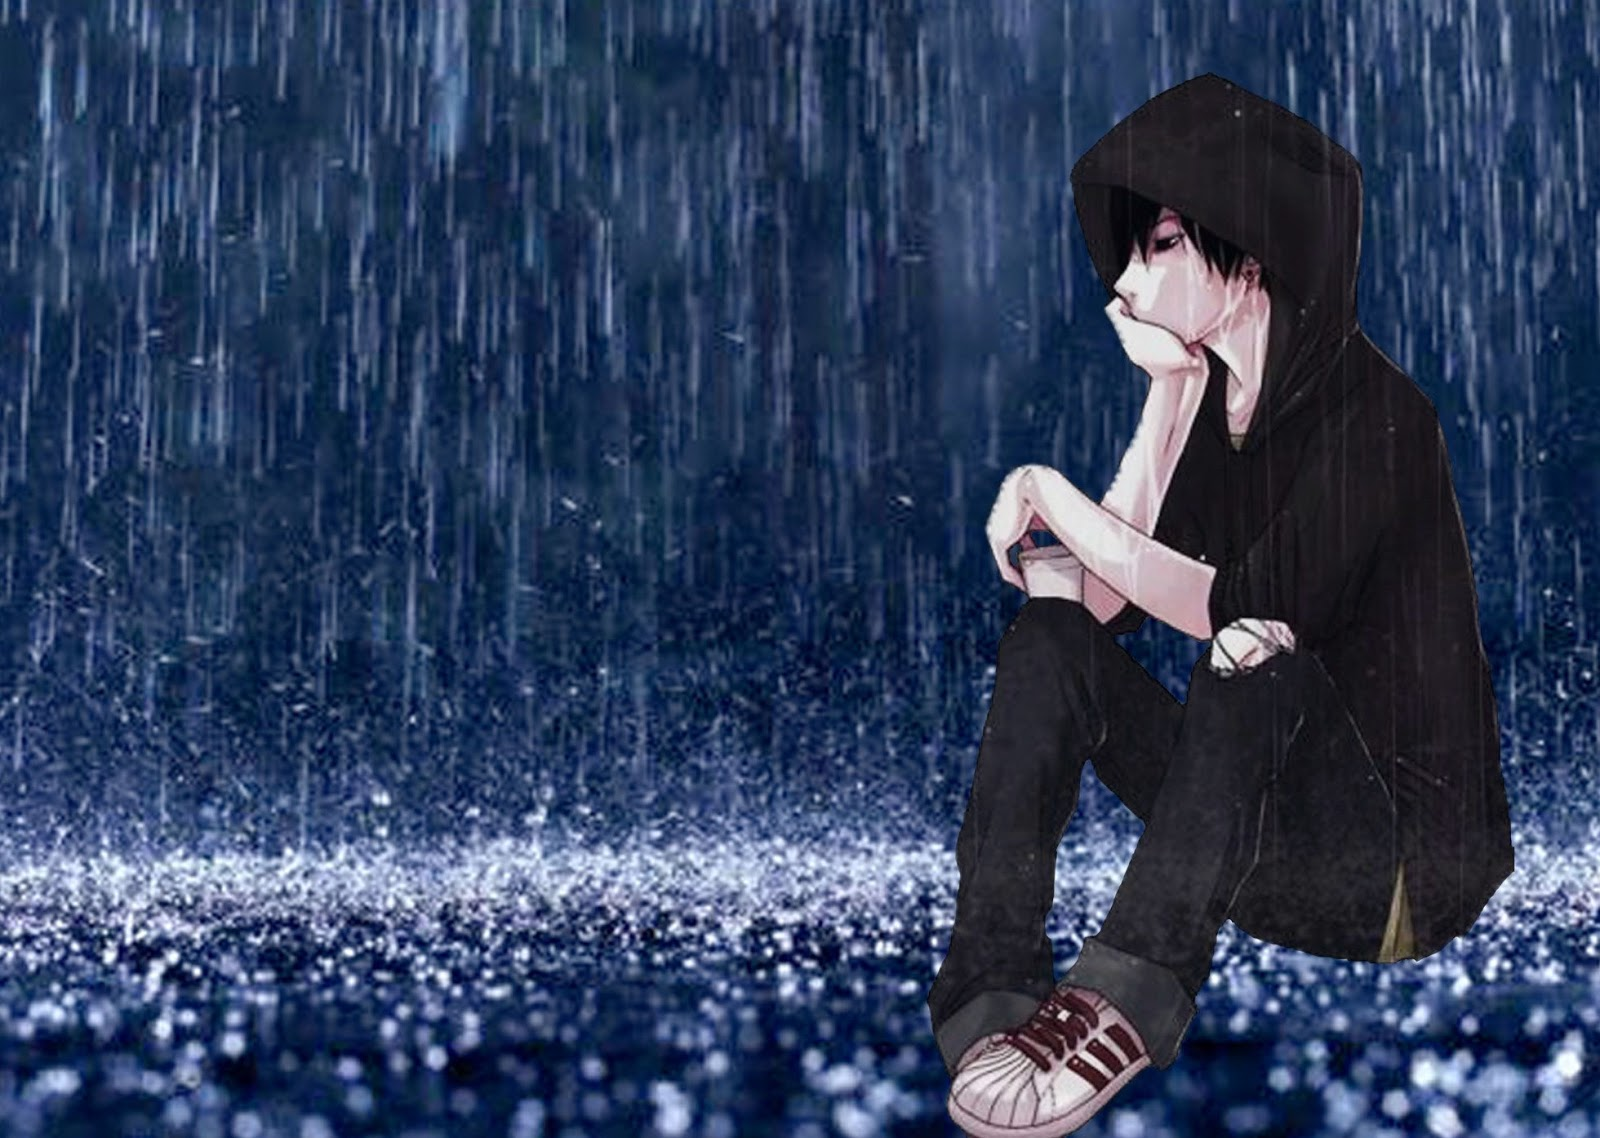 Alone Boy HD Wallpaper and Images Boy in rain 1600x1138